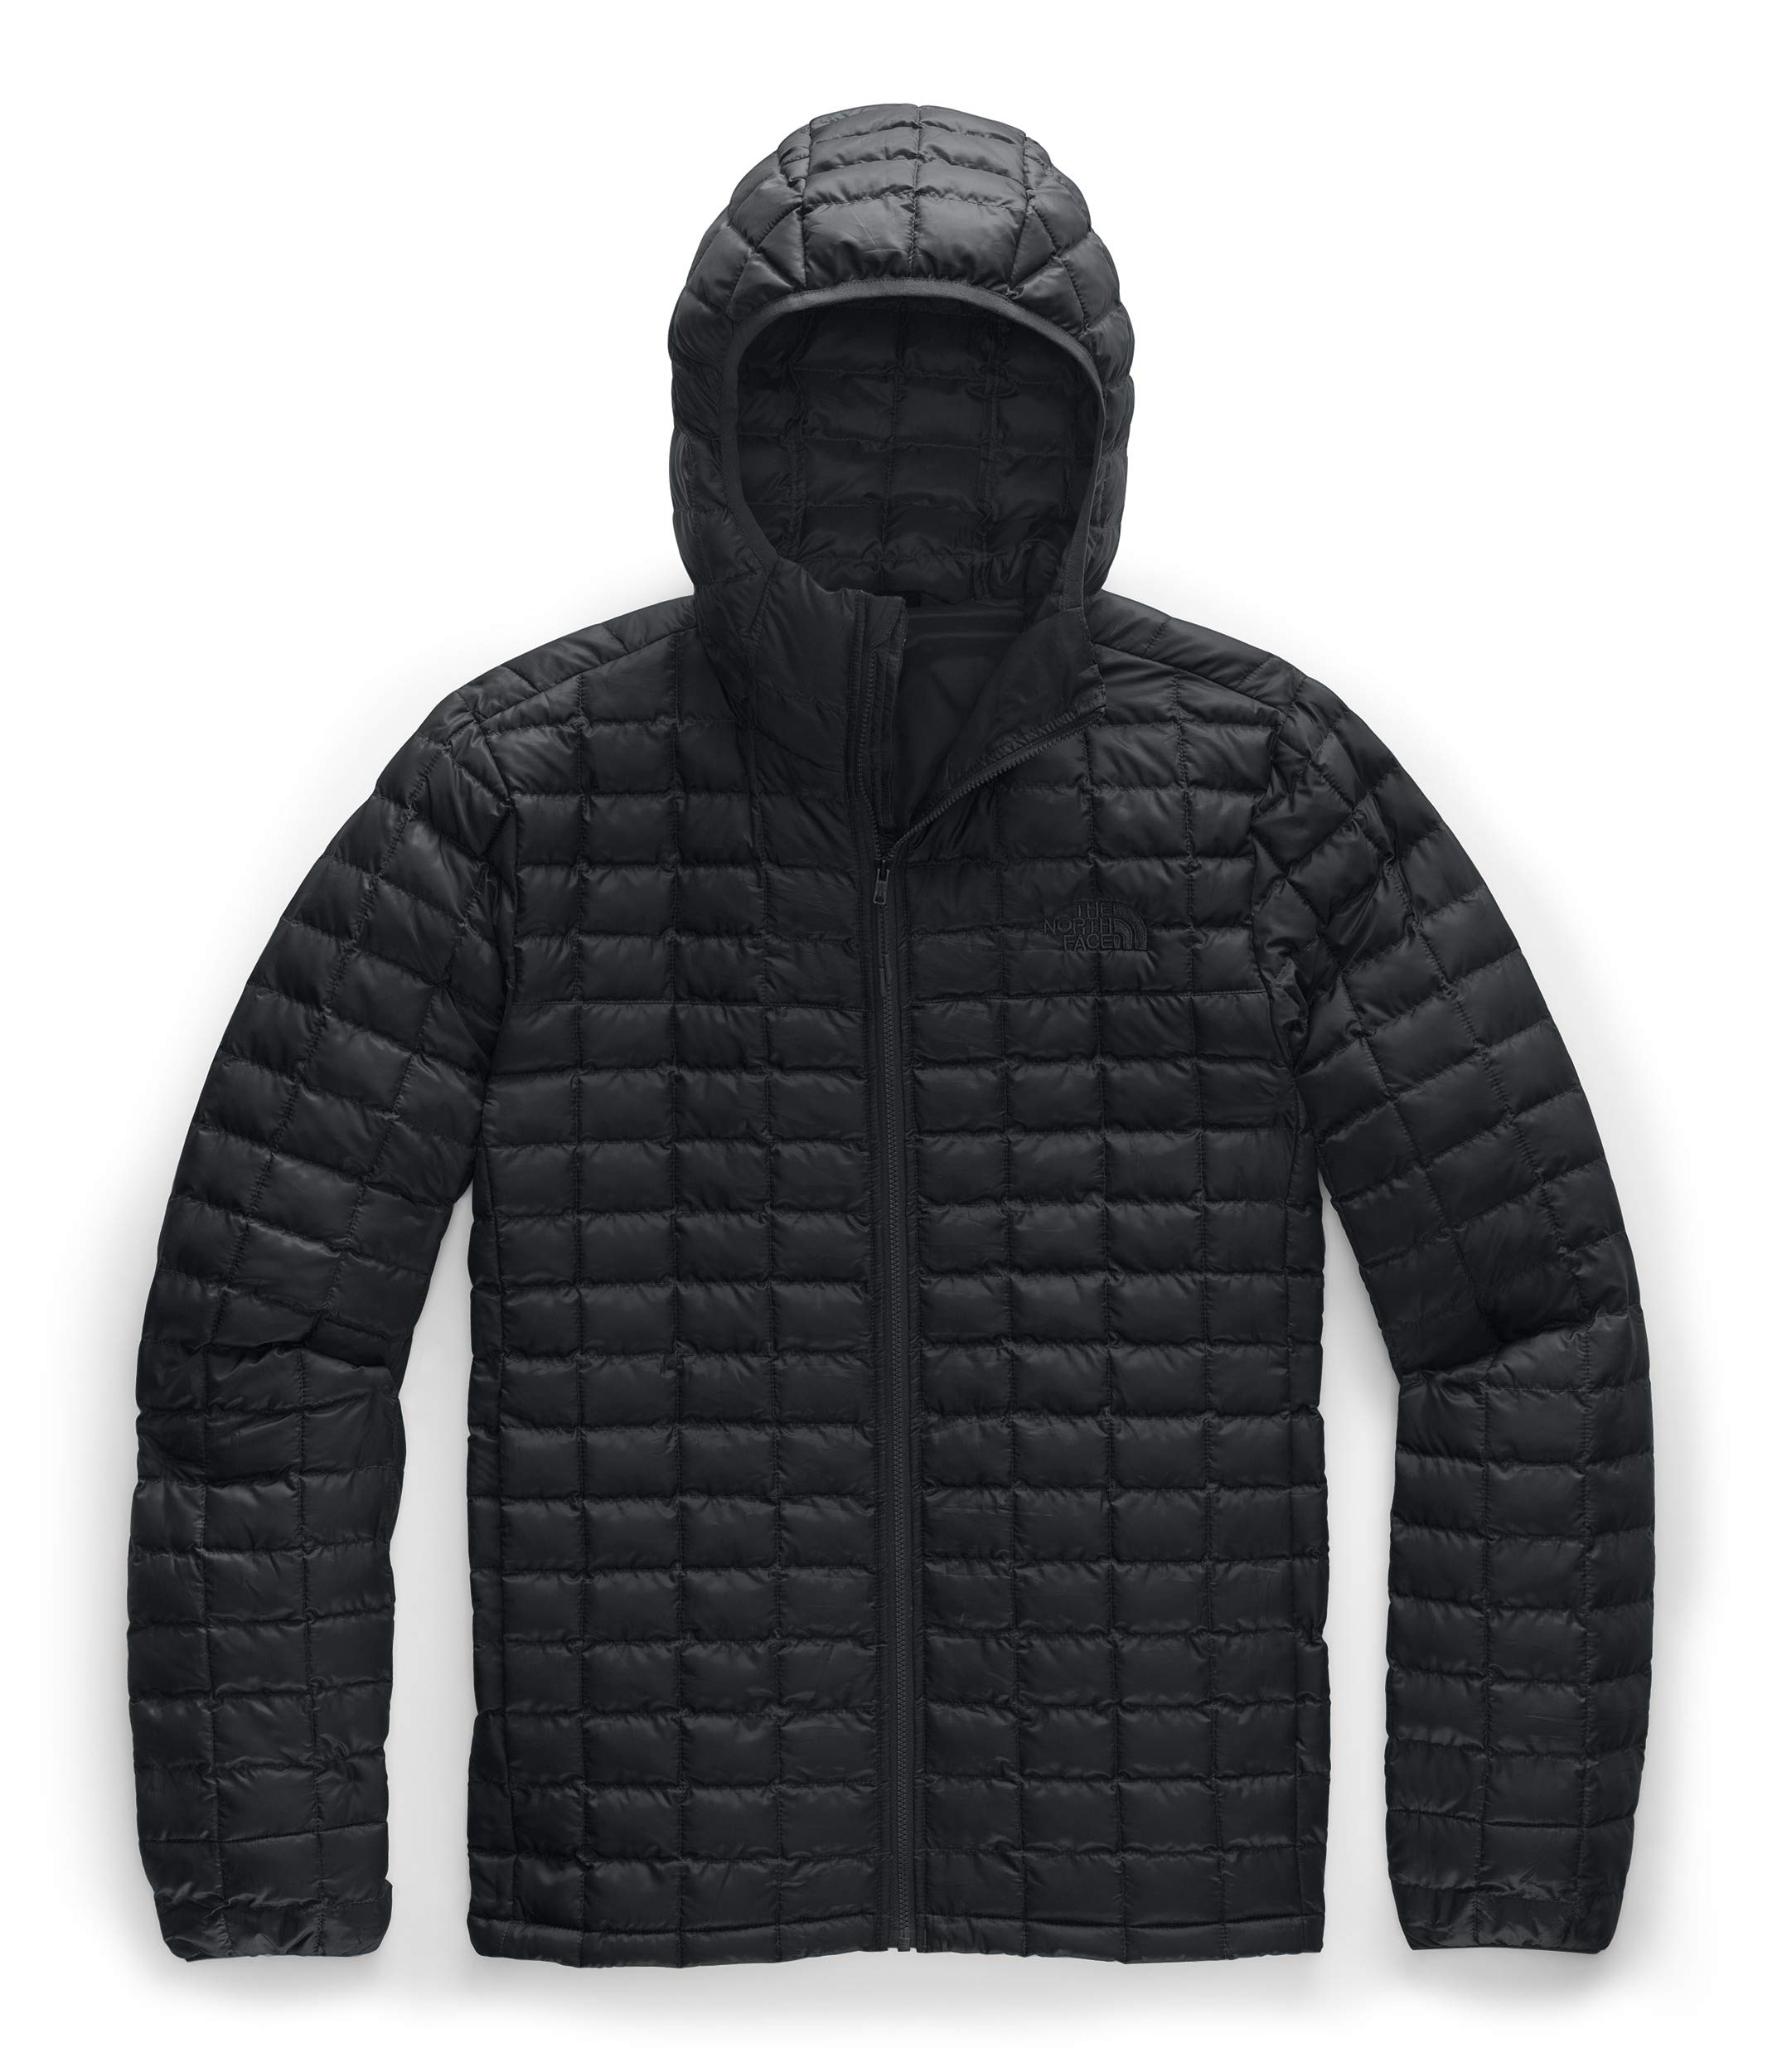 North Face Thermoball Hoodie Jacket